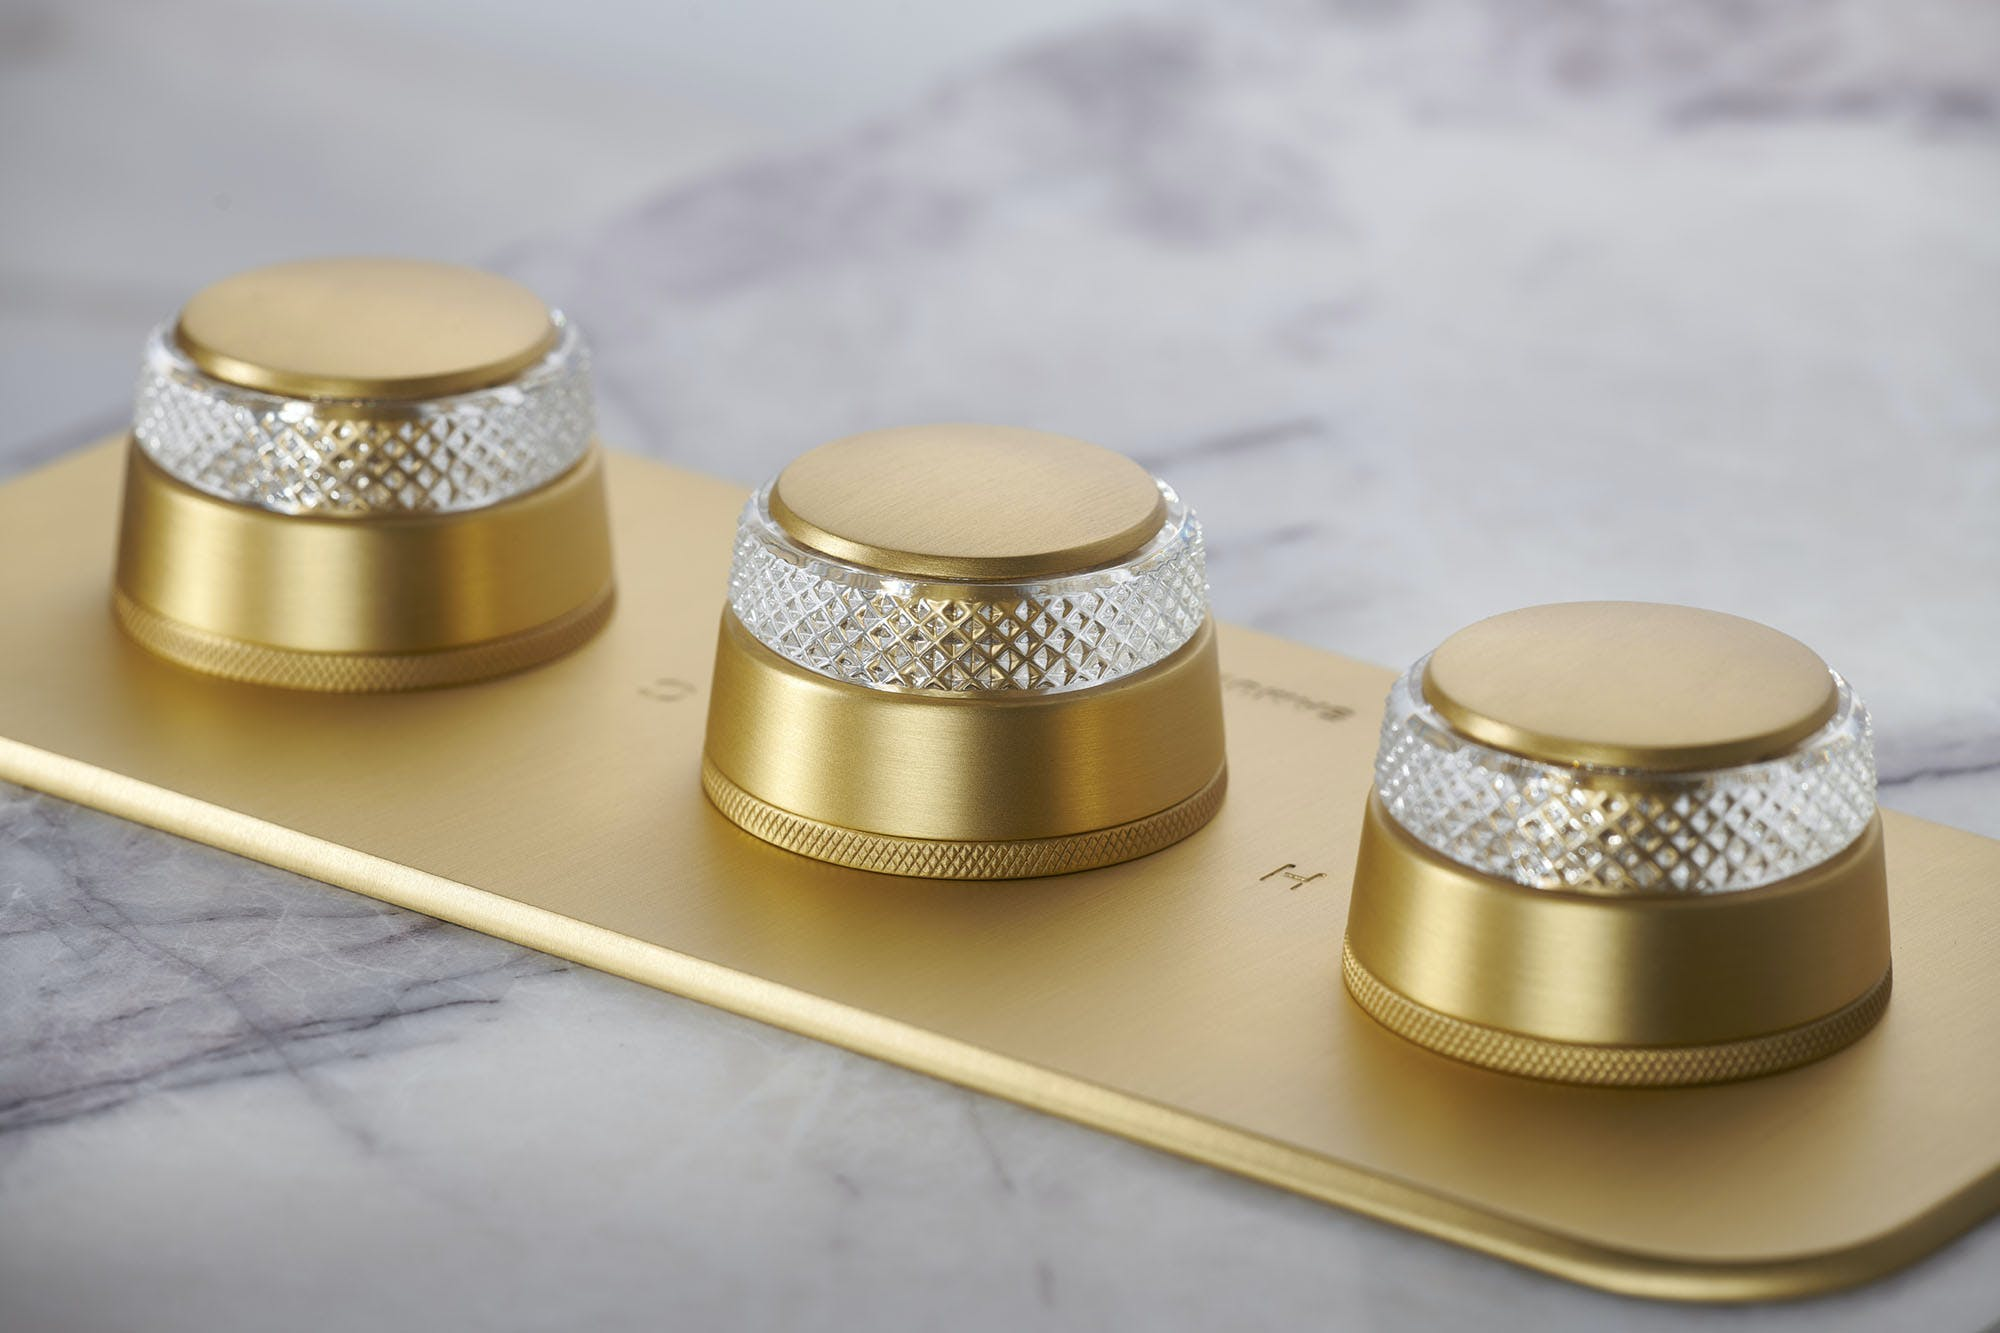 Samuel Heath One Hundred collection shower. Brushed gold finish with clear crystal roundels.